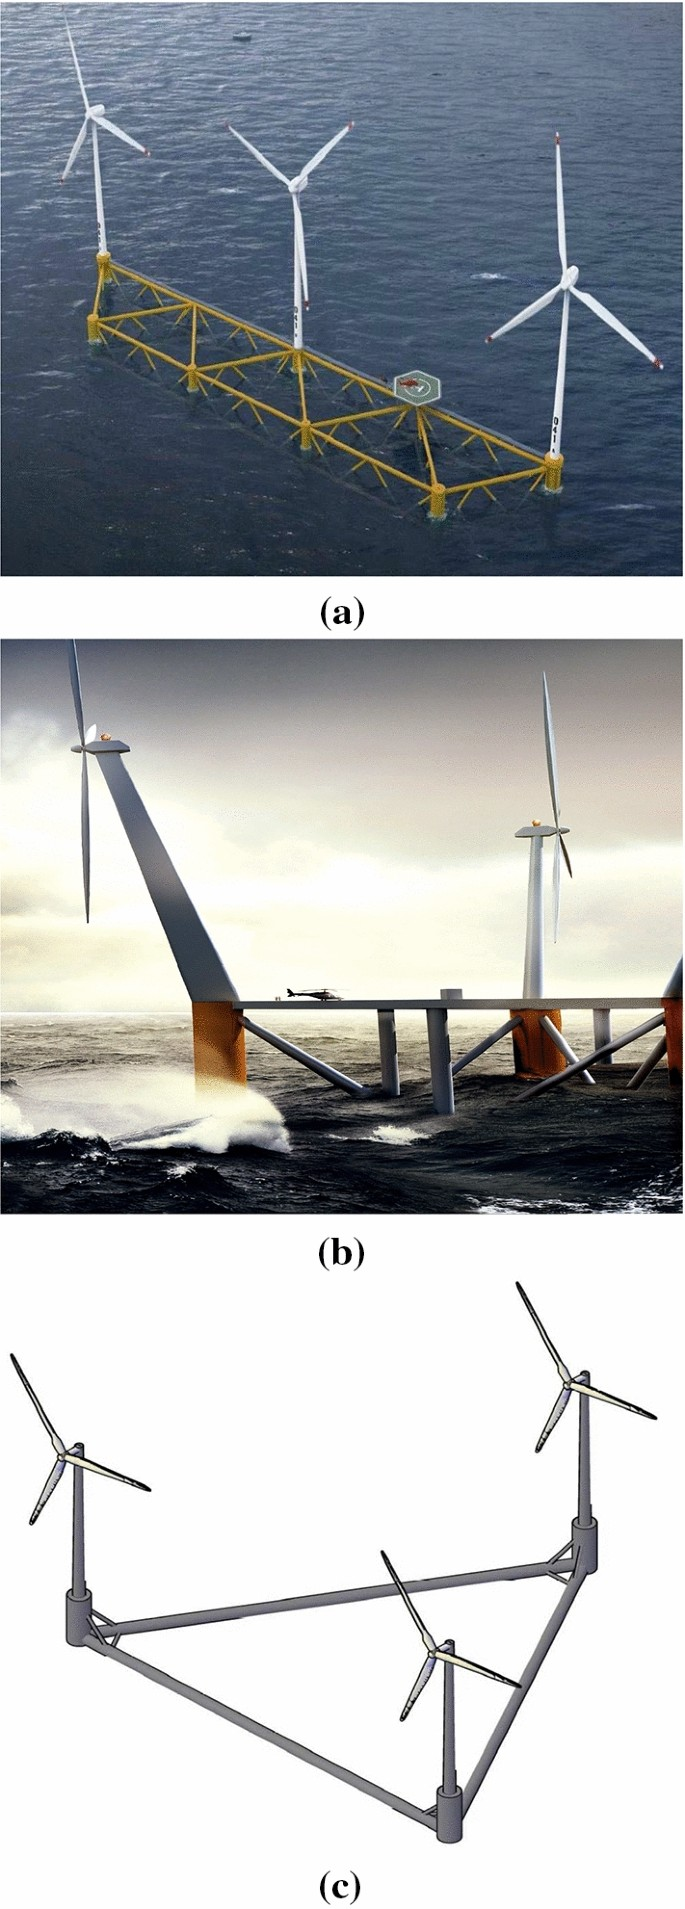 On Motion Analysis And Elastic Response Of Floating Offshore Wind Turbines Springerlink